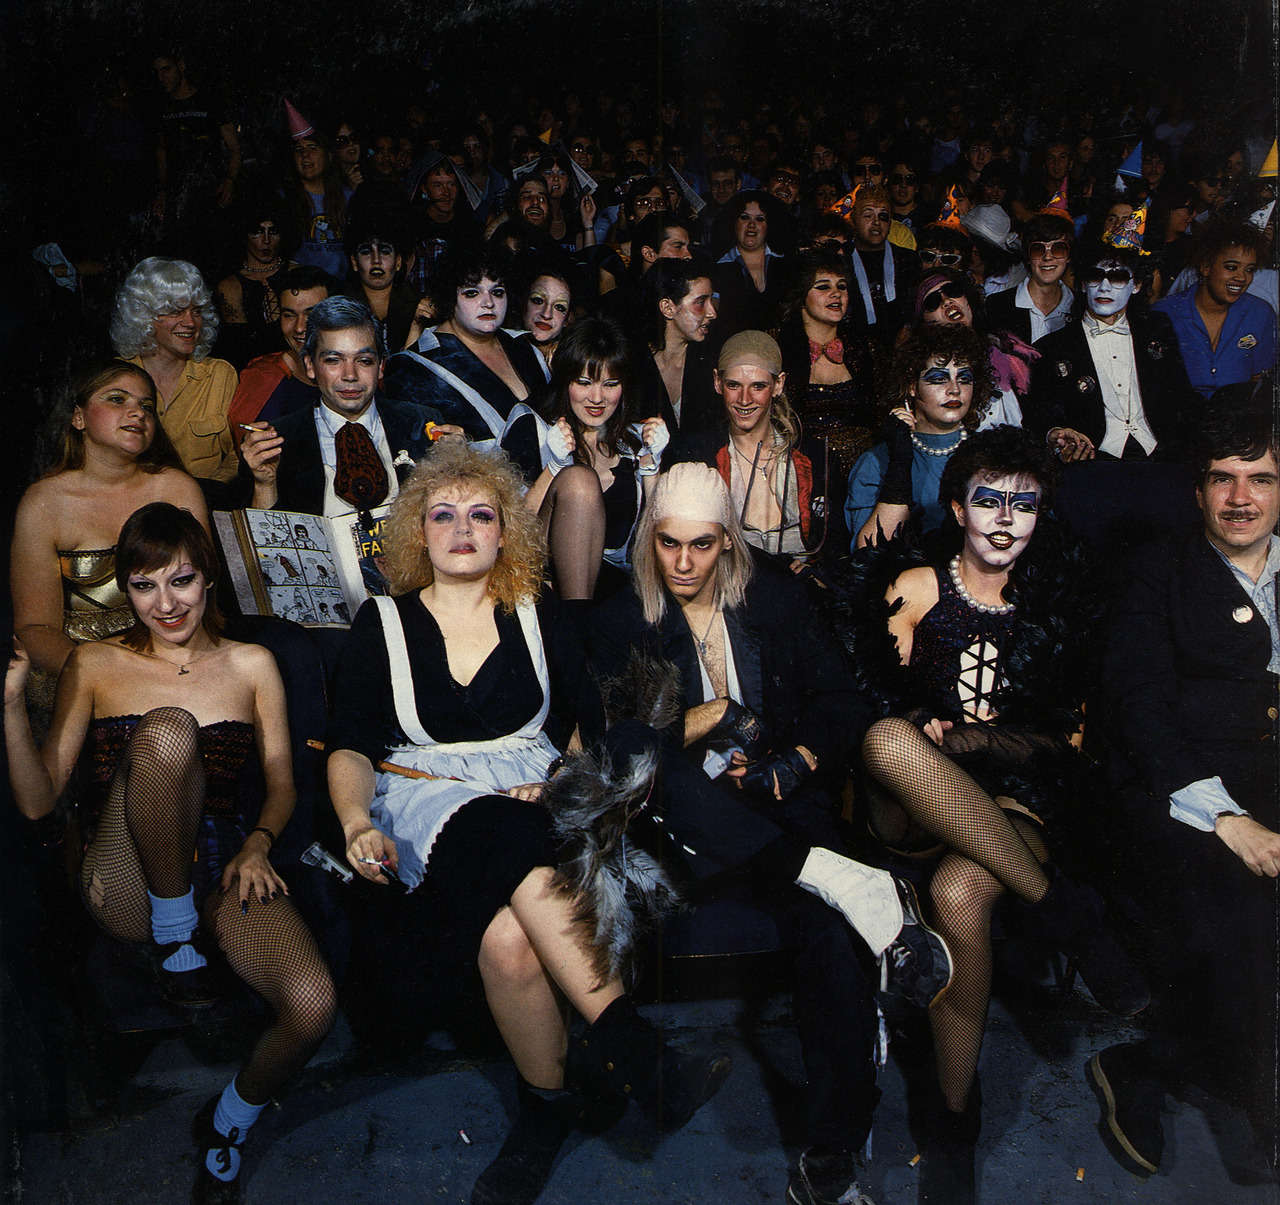 Retro Rocky Horror Picture Show audience